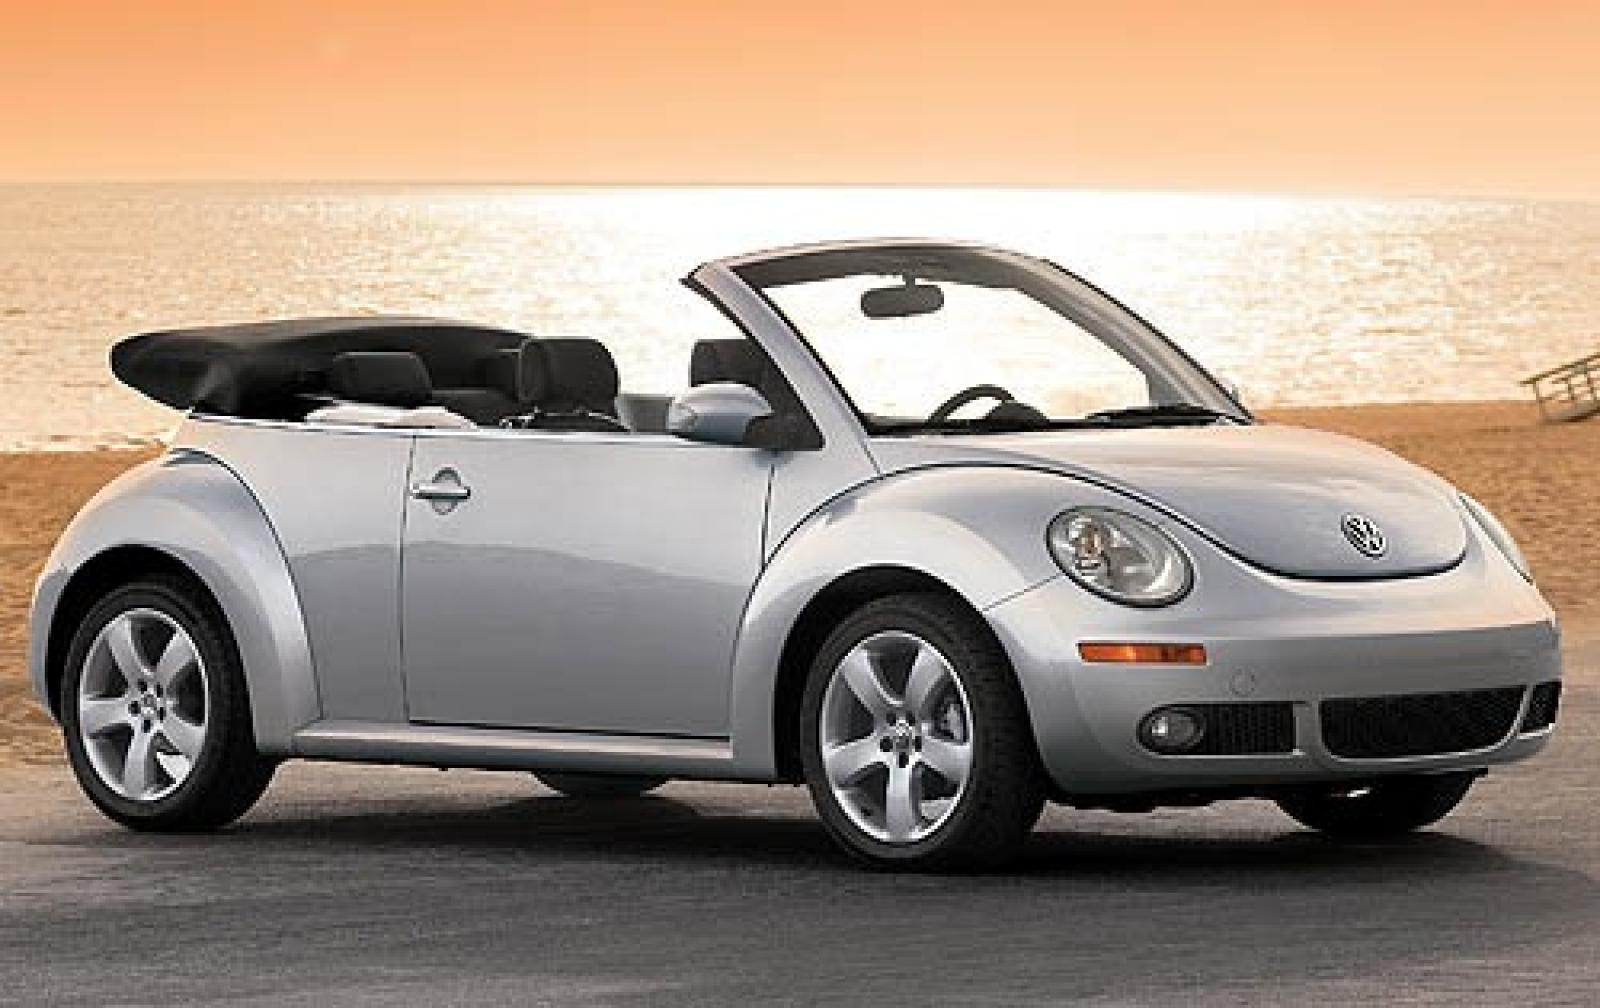 2006 volkswagen new beetle information and photos zombiedrive. Black Bedroom Furniture Sets. Home Design Ideas